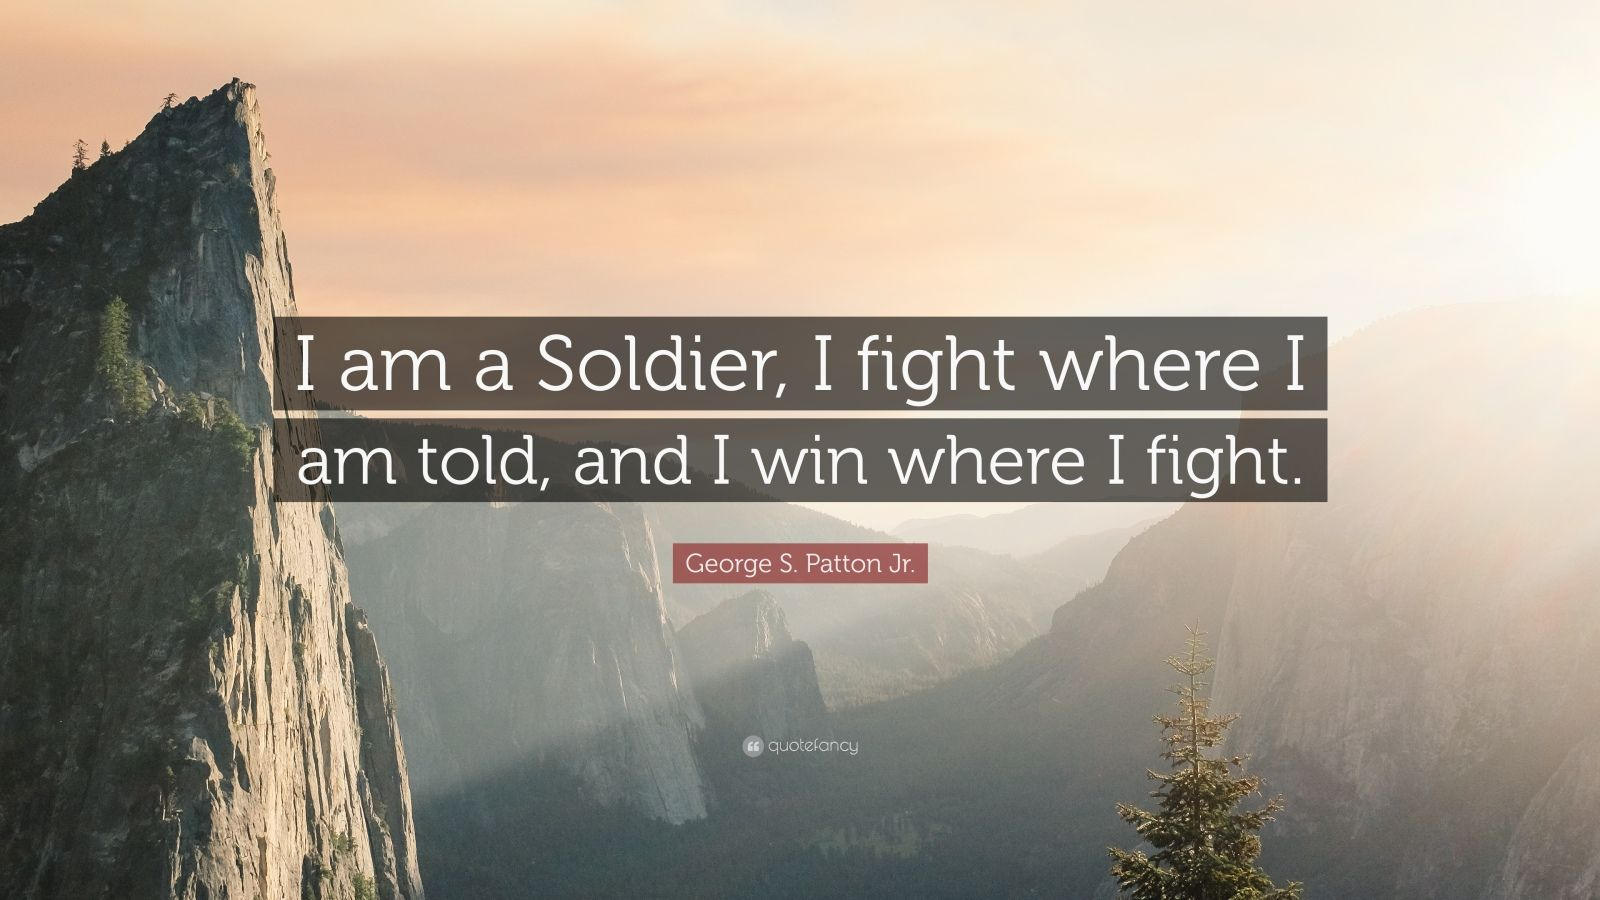 """George S. Patton Jr. Quote: """"I am a Soldier, I fight where I am told, and I win where I fight."""""""